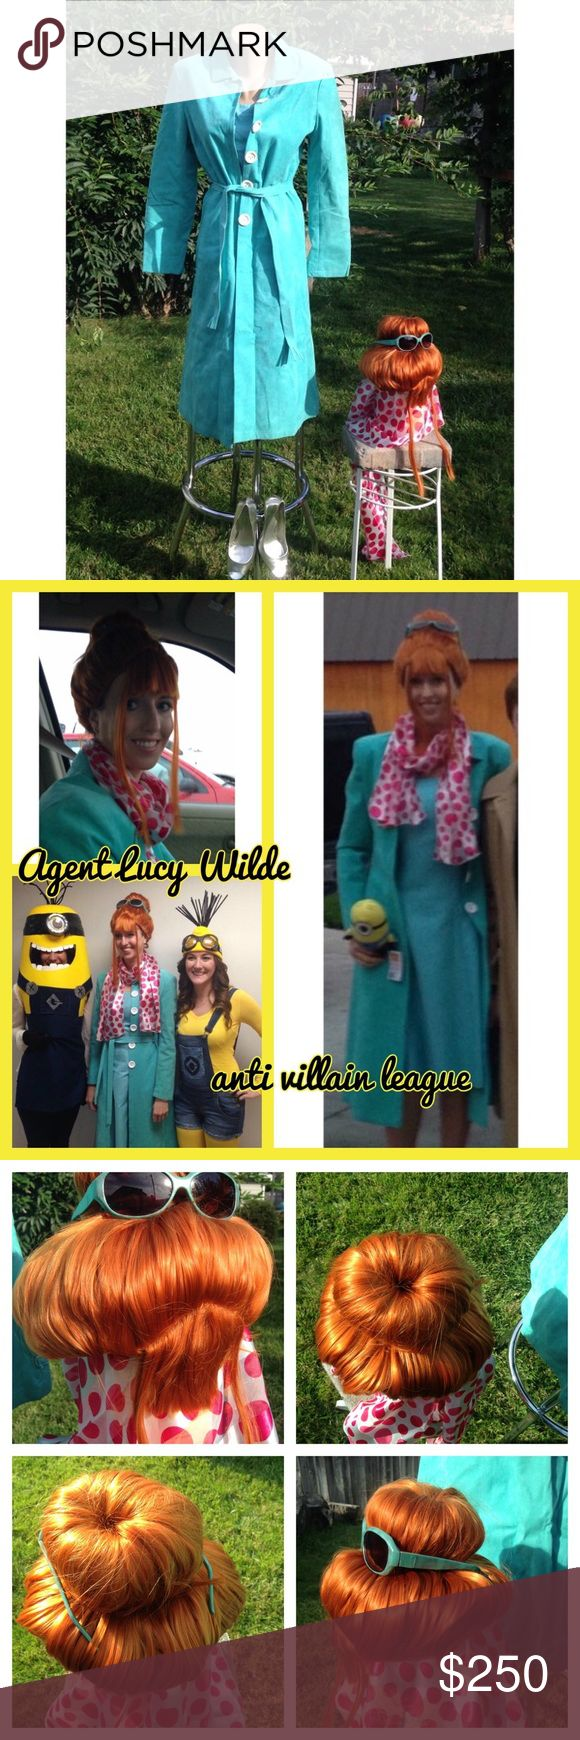 Agent Lucy Wilde Minions Halloween Costume Cosplay Agent Lucy Wilde Minions Complete Halloween Cosplay Costume size women's small. Vintage micro suede jacket with custom buttons. Ann Taylor Tiffany blue dress size 4. Silver Nine West heels size 8. Scarf, wig, sunglasses & AVL Badge included. See separate listing for more pictures ☺️ Handmade Dresses